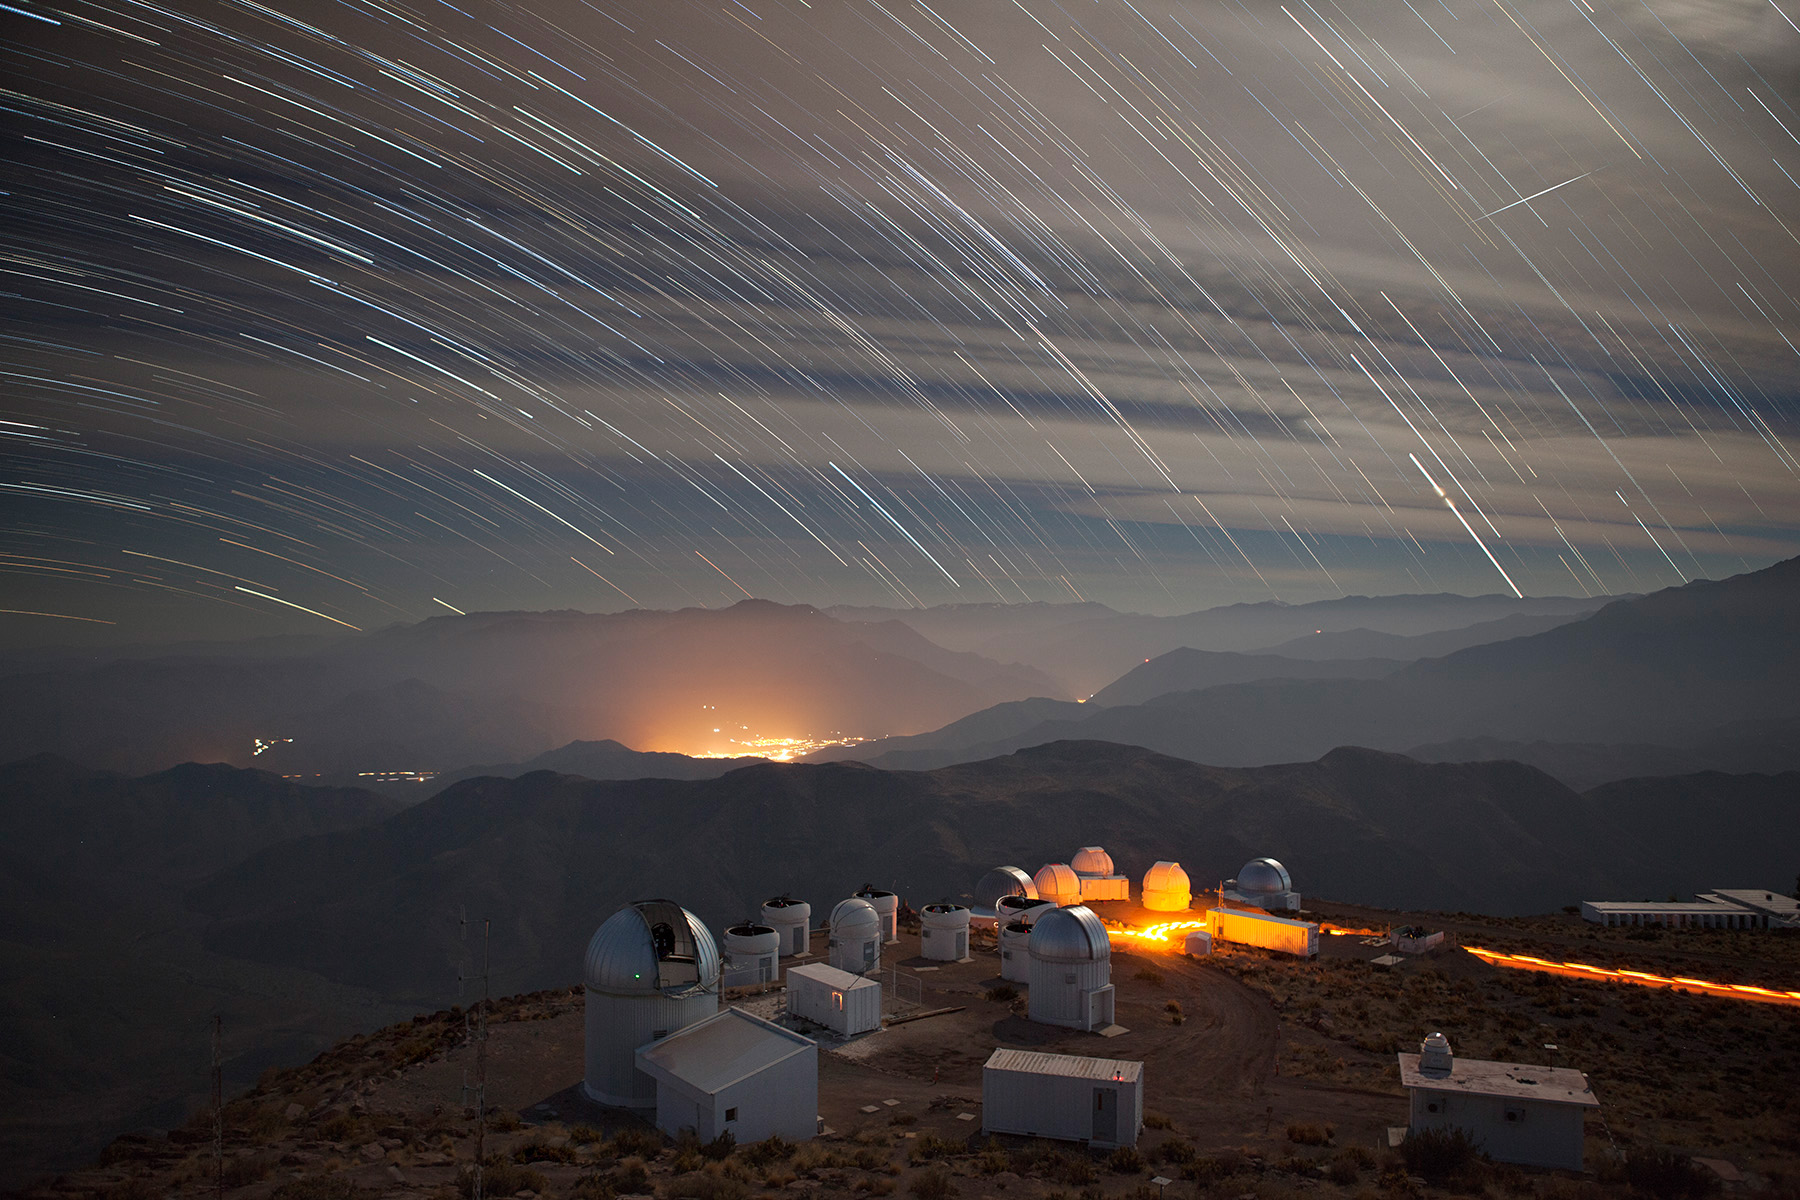 "This Chilean mountaintop is the home of the Dark Energy Camera. See a <a href=""https://youtu.be/m4_rAr9fzaw"">5-minute video</a>, created by the photographer, of time-lapse clips from the Blanco telescope. astrophysics, Dark Energy Camera, Dark Energy Survey, time-lapse Photo: Marty Murphy"